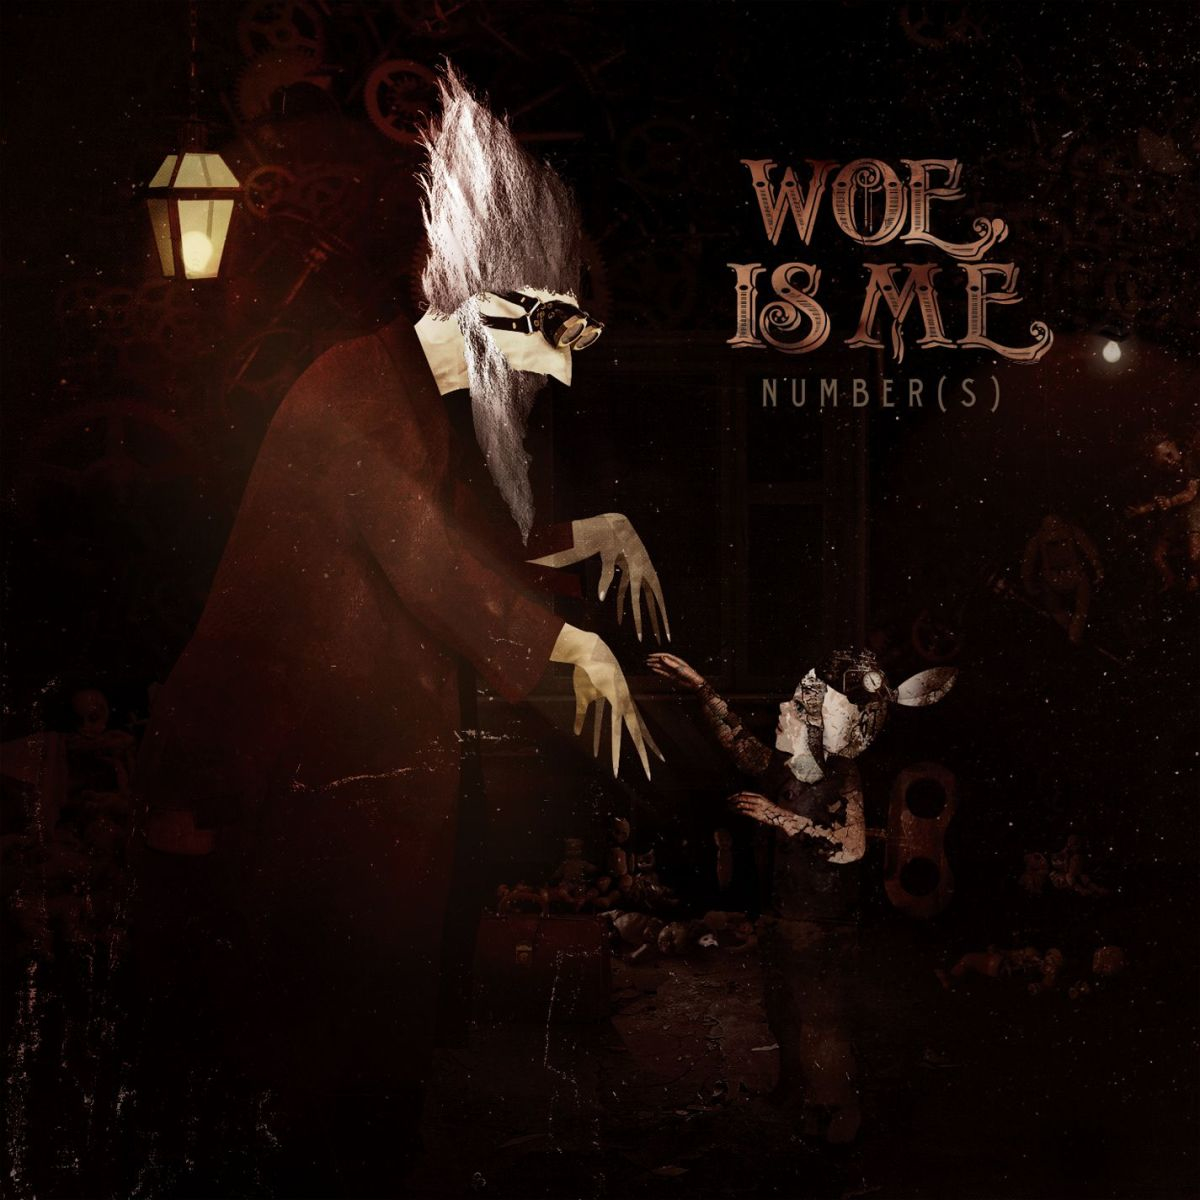 Woe, Is Me - Number[s] (2010)